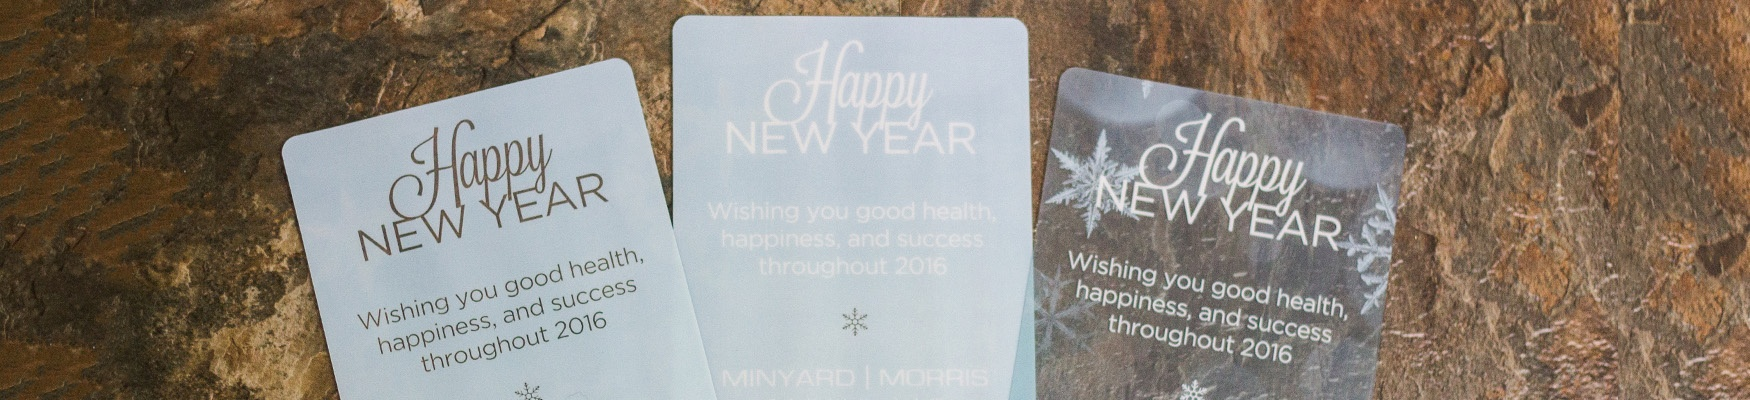 Corporate Holiday Cards on Clear Plastic